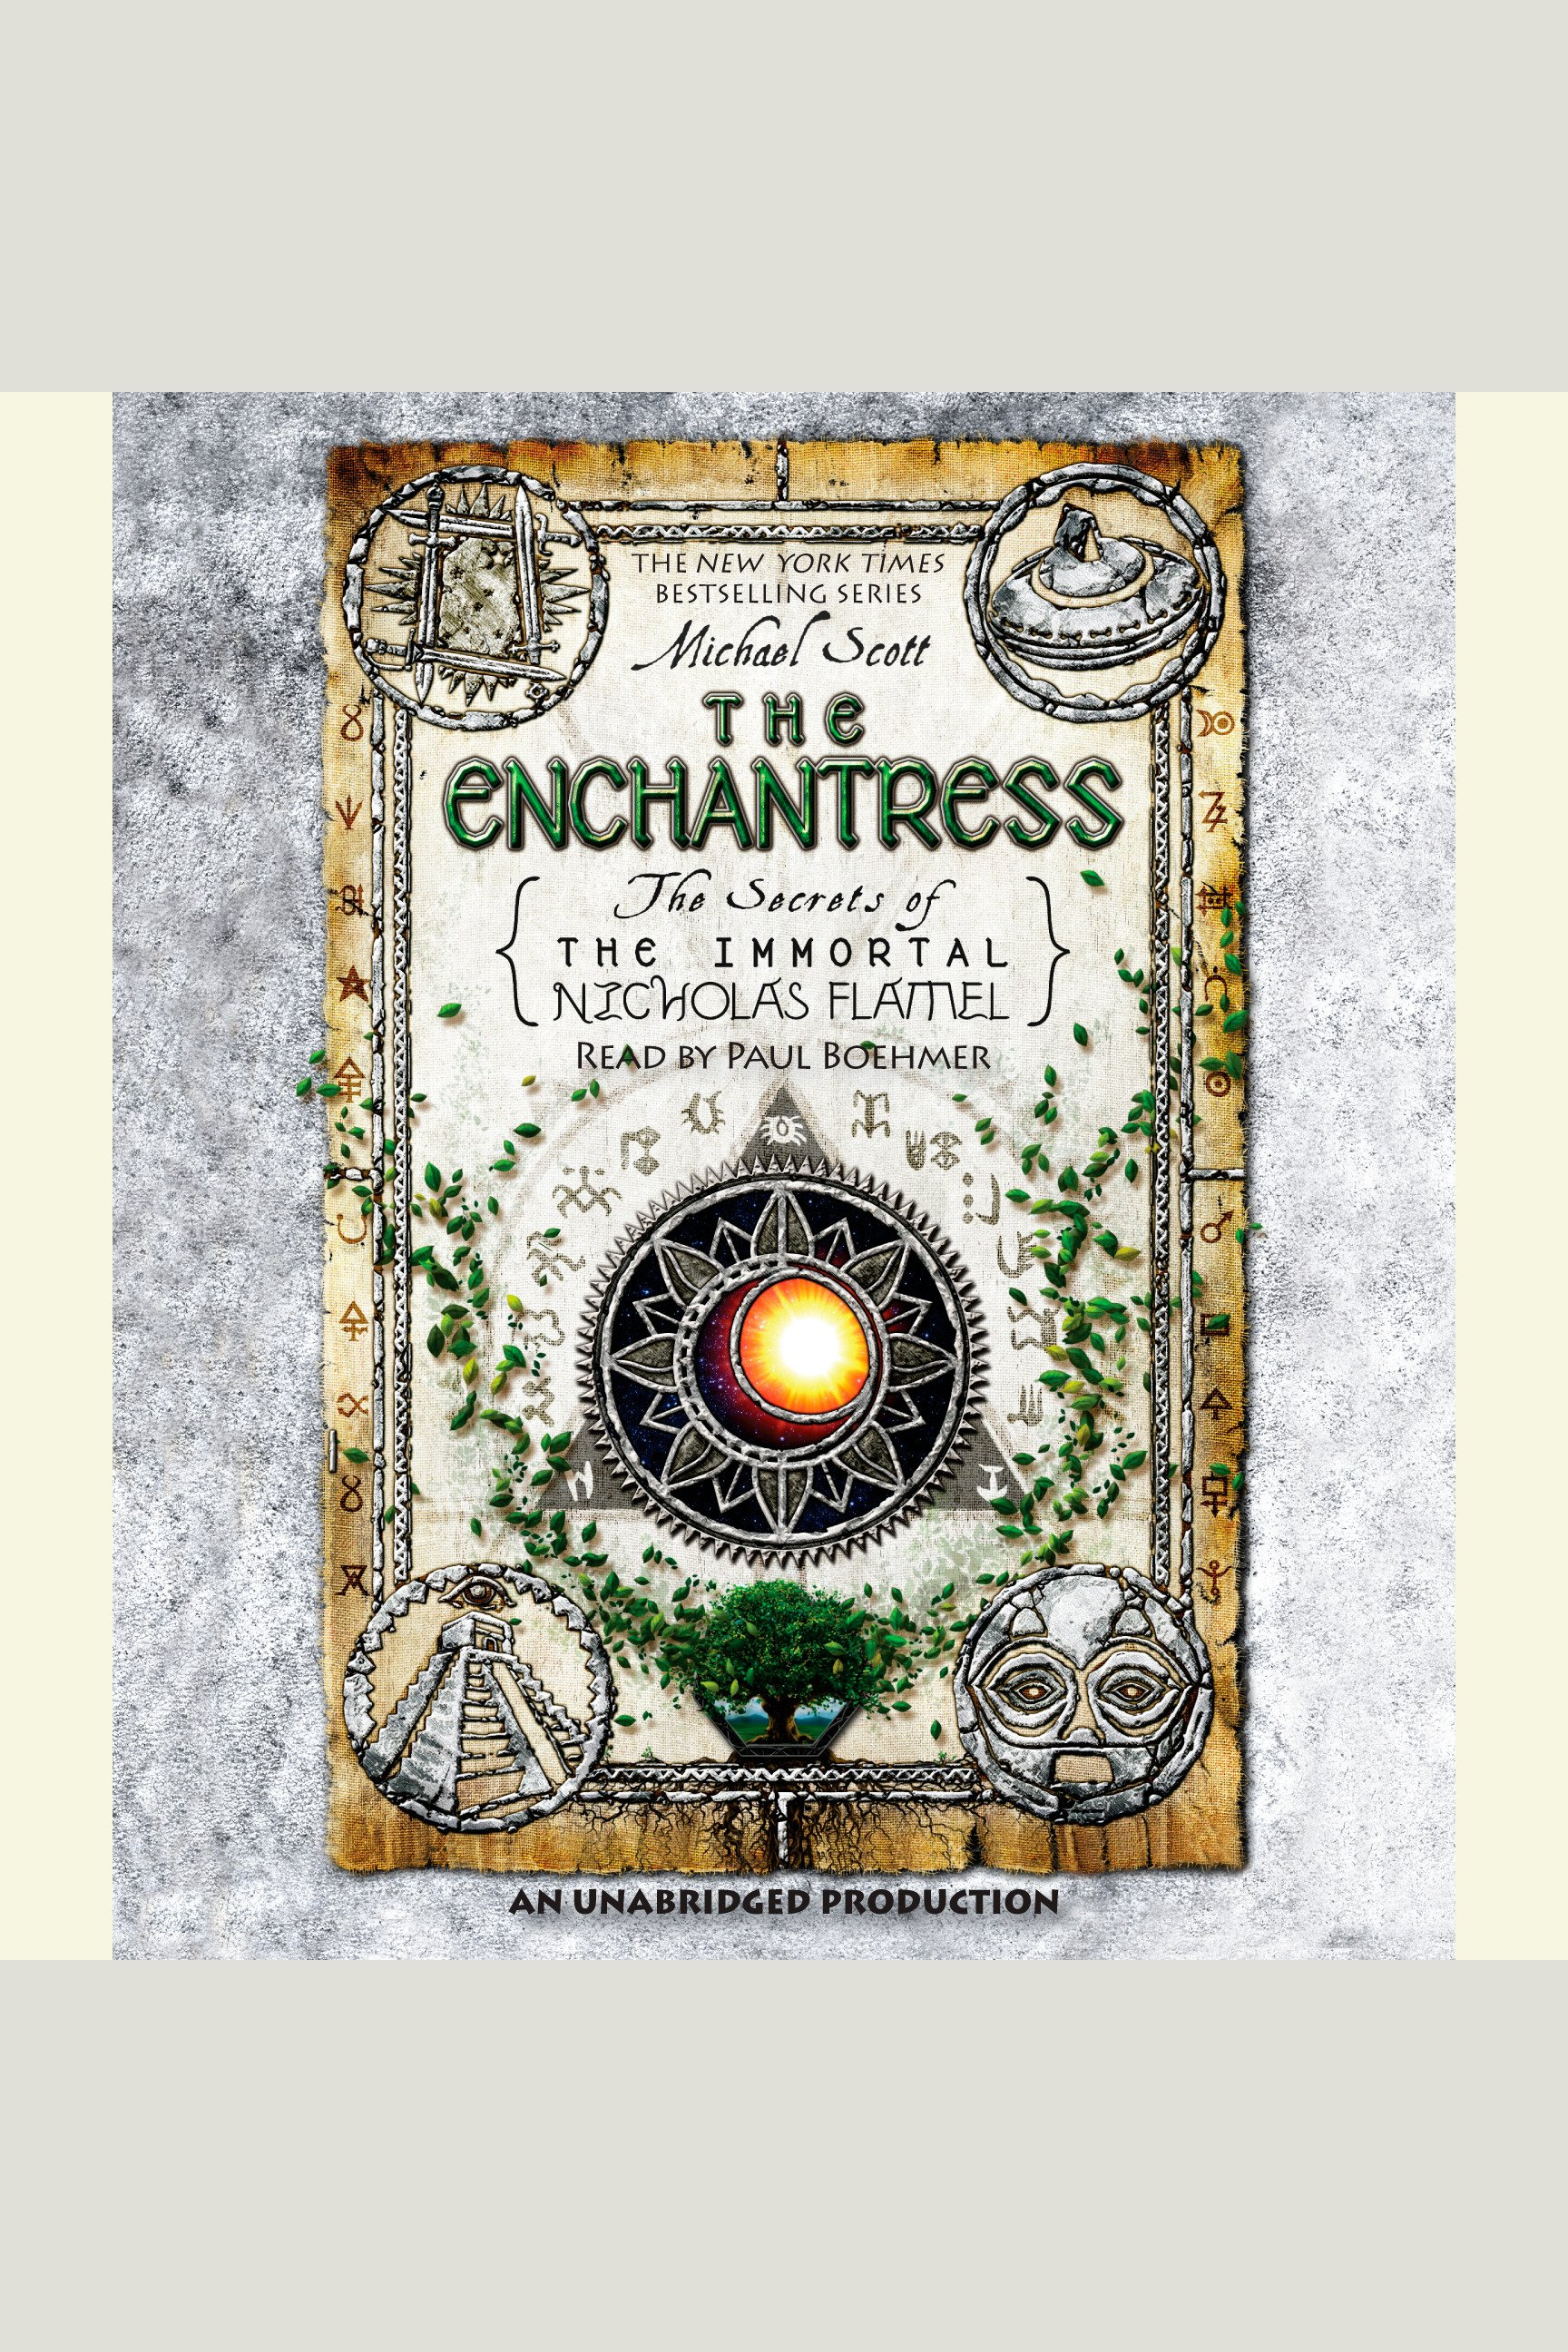 The enchantress cover image